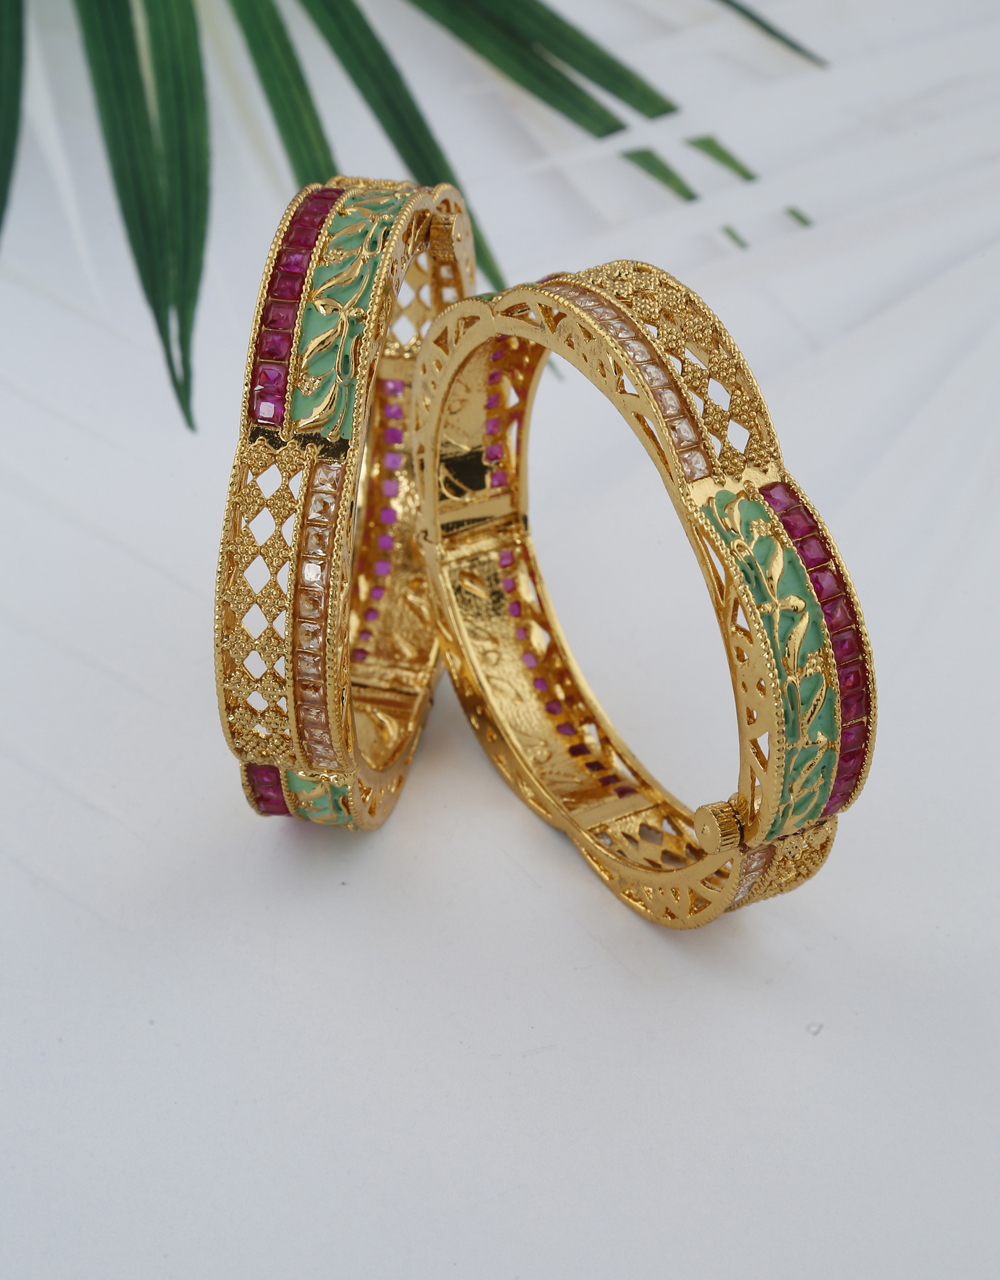 Latest Stylish Designer Bangles Decorated With Green Colour And Decked With Pink Stones For Women